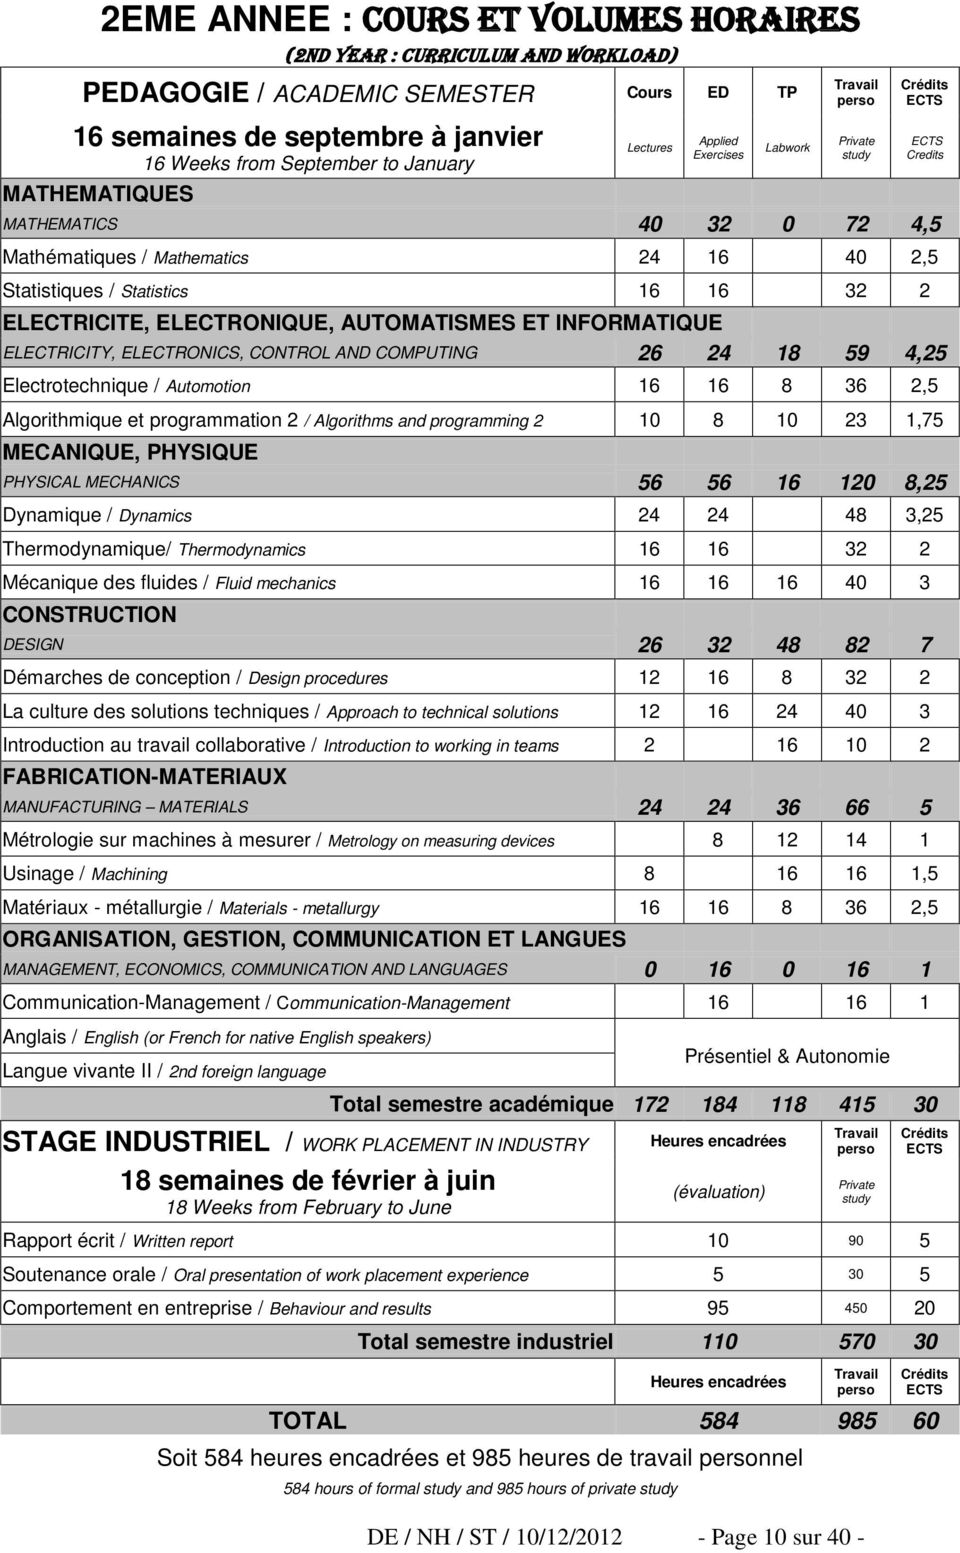 INFORMATIQUE ELECTRICITY, ELECTRONICS, CONTROL AND COMPUTING 26 24 18 59 4,25 Electrotechnique / Automotion 16 16 8 36 2,5 Algorithmique et programmation 2 / Algorithms and programming 2 10 8 10 23